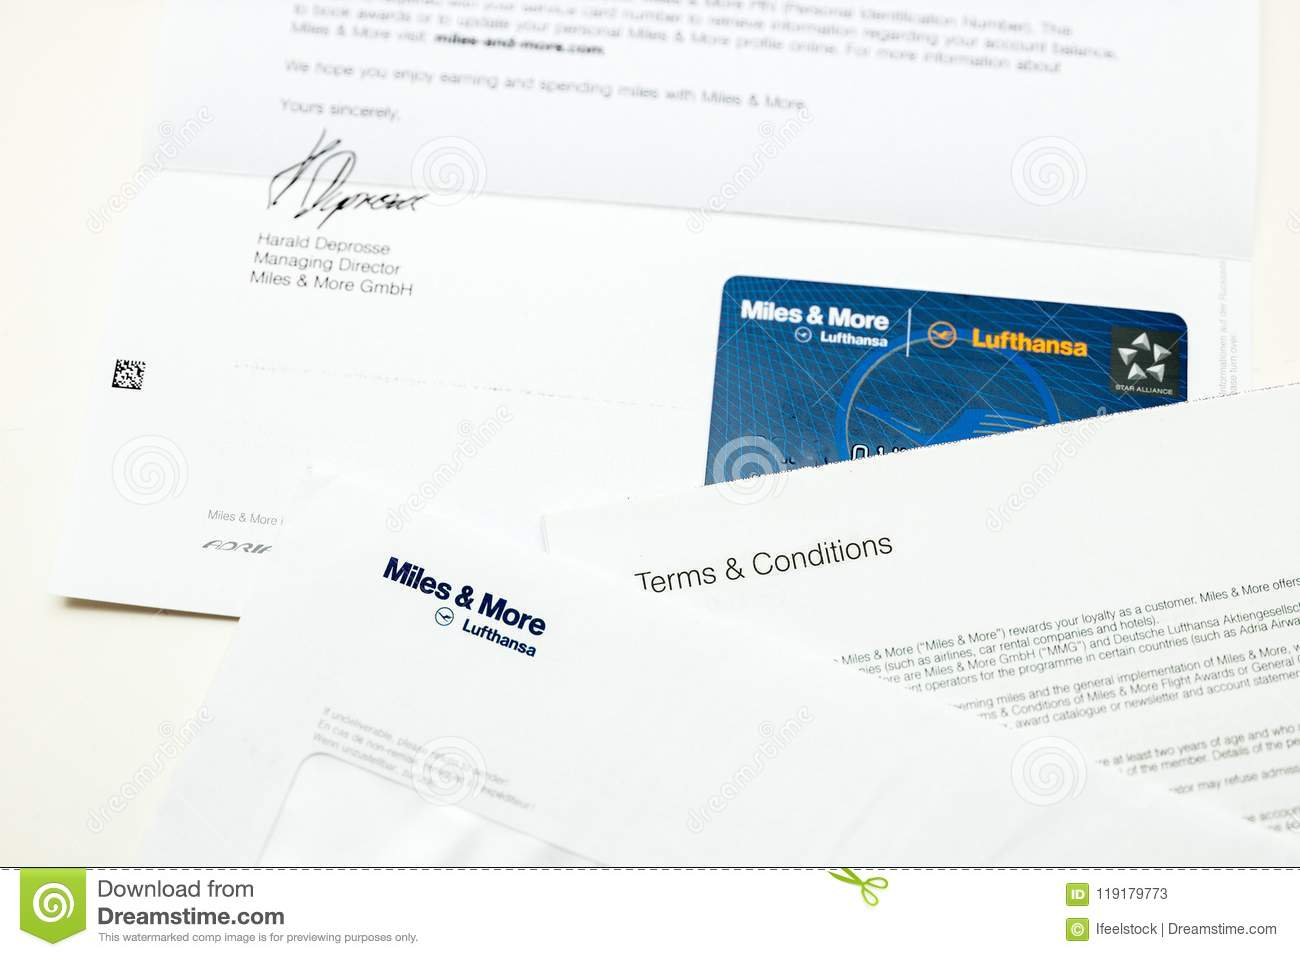 Miles And More Gold Karte Miles And More Lufthansa Login